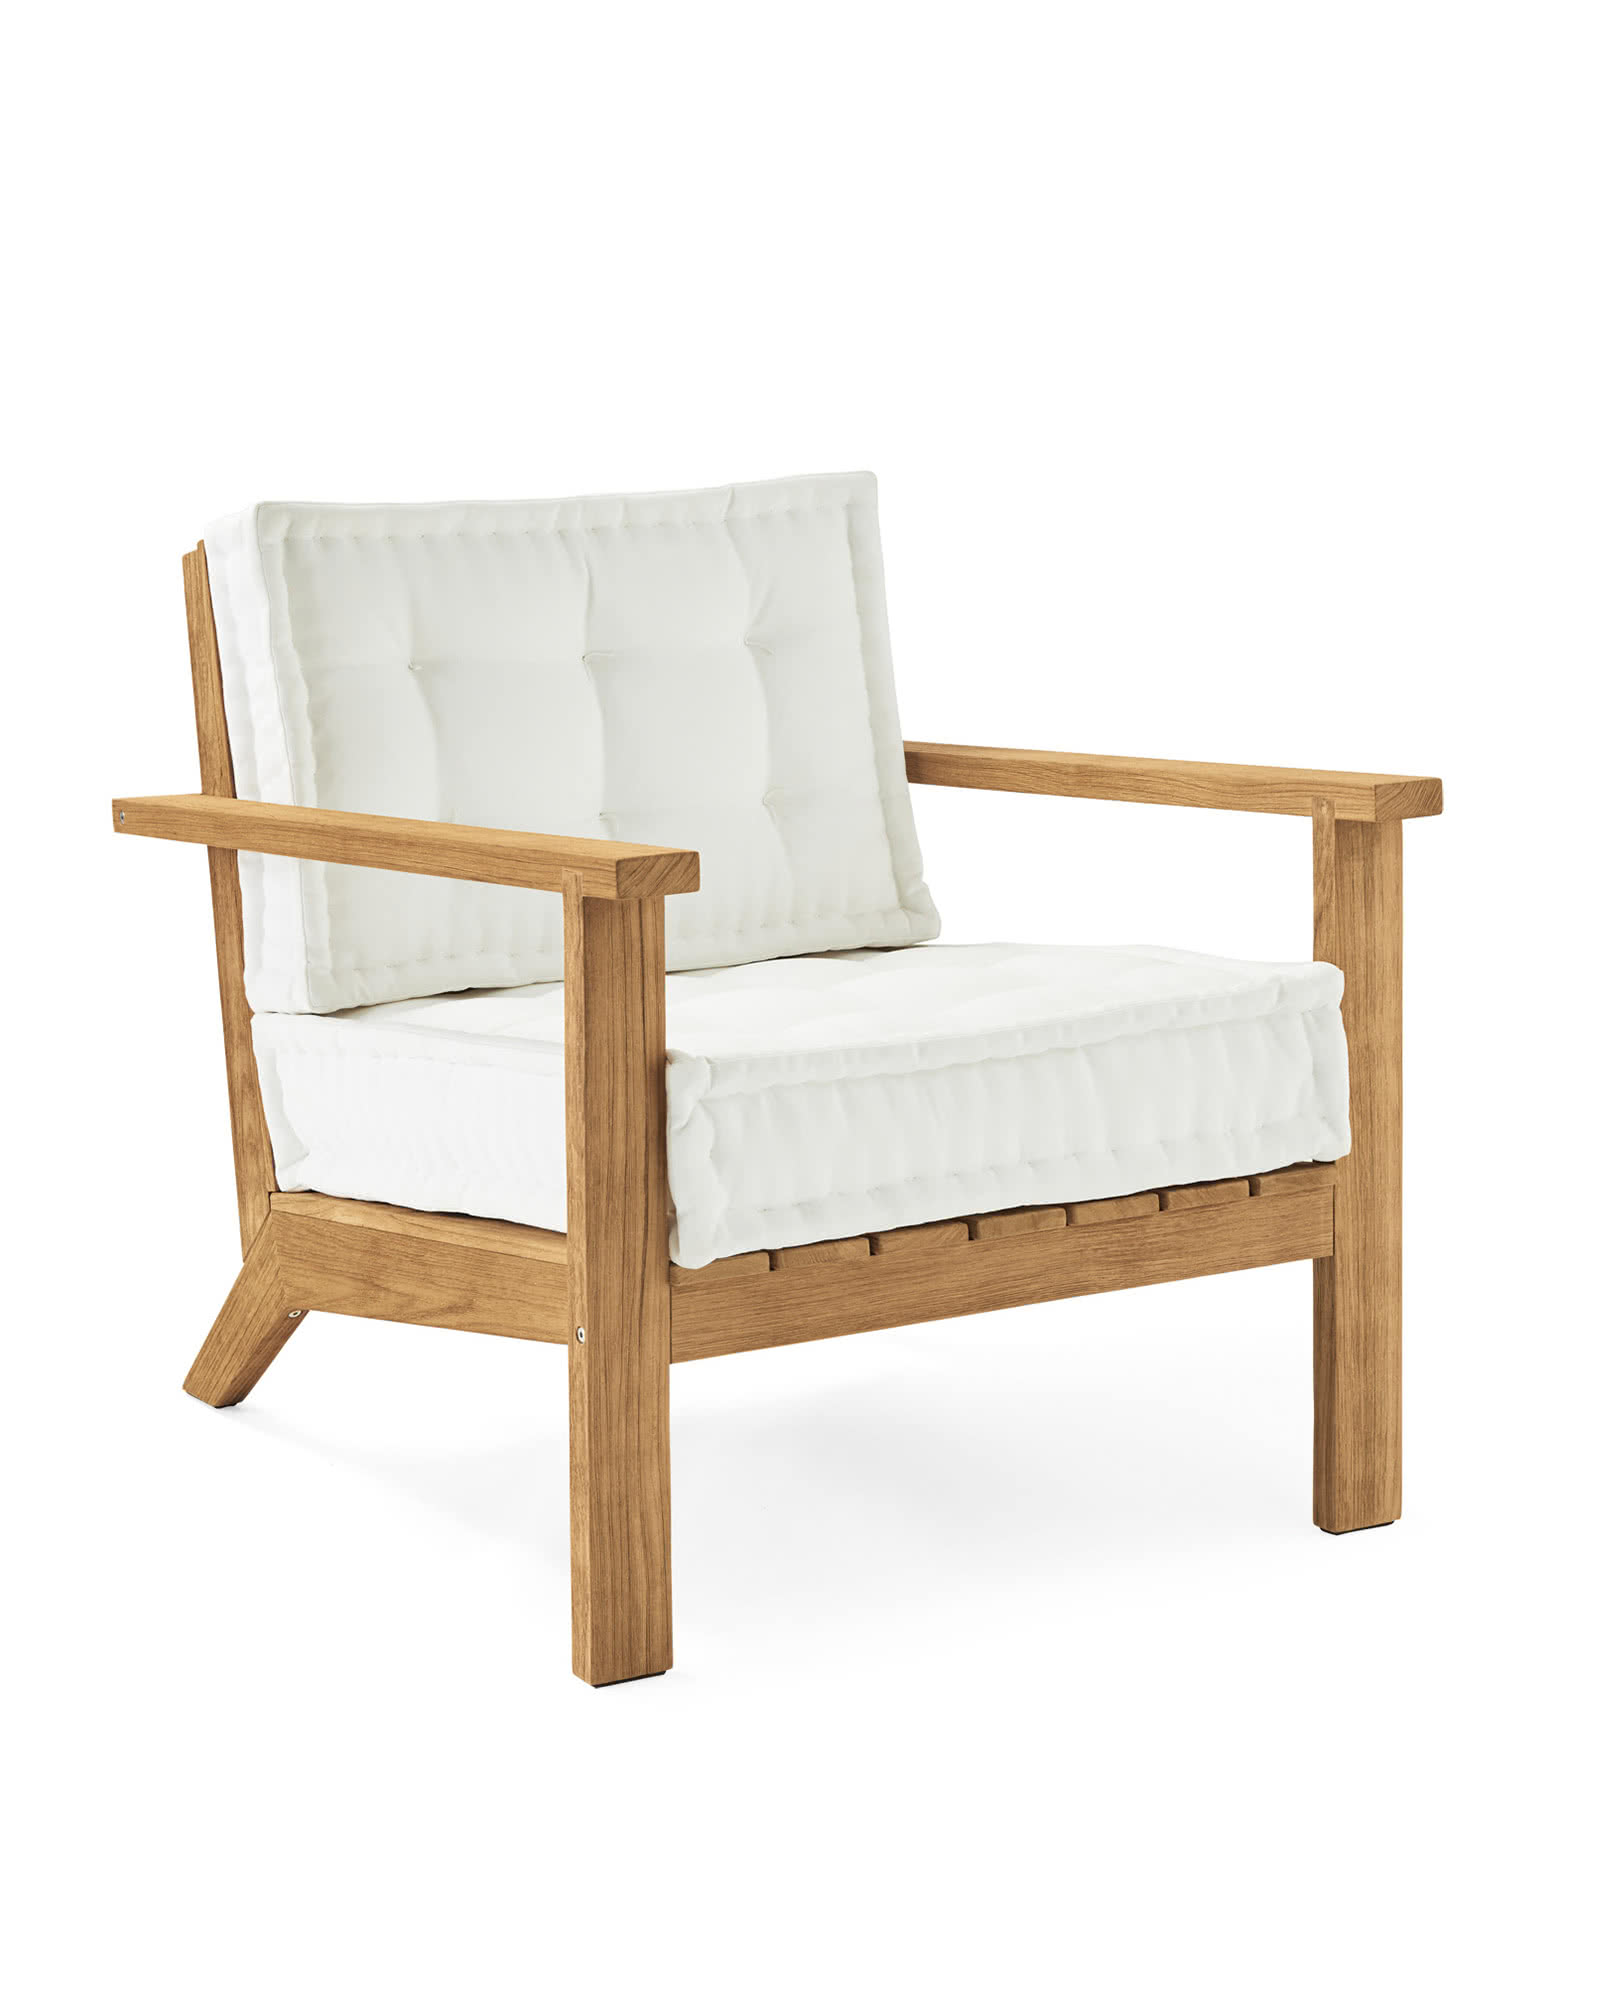 Cliffside Teak Lounge Chair,